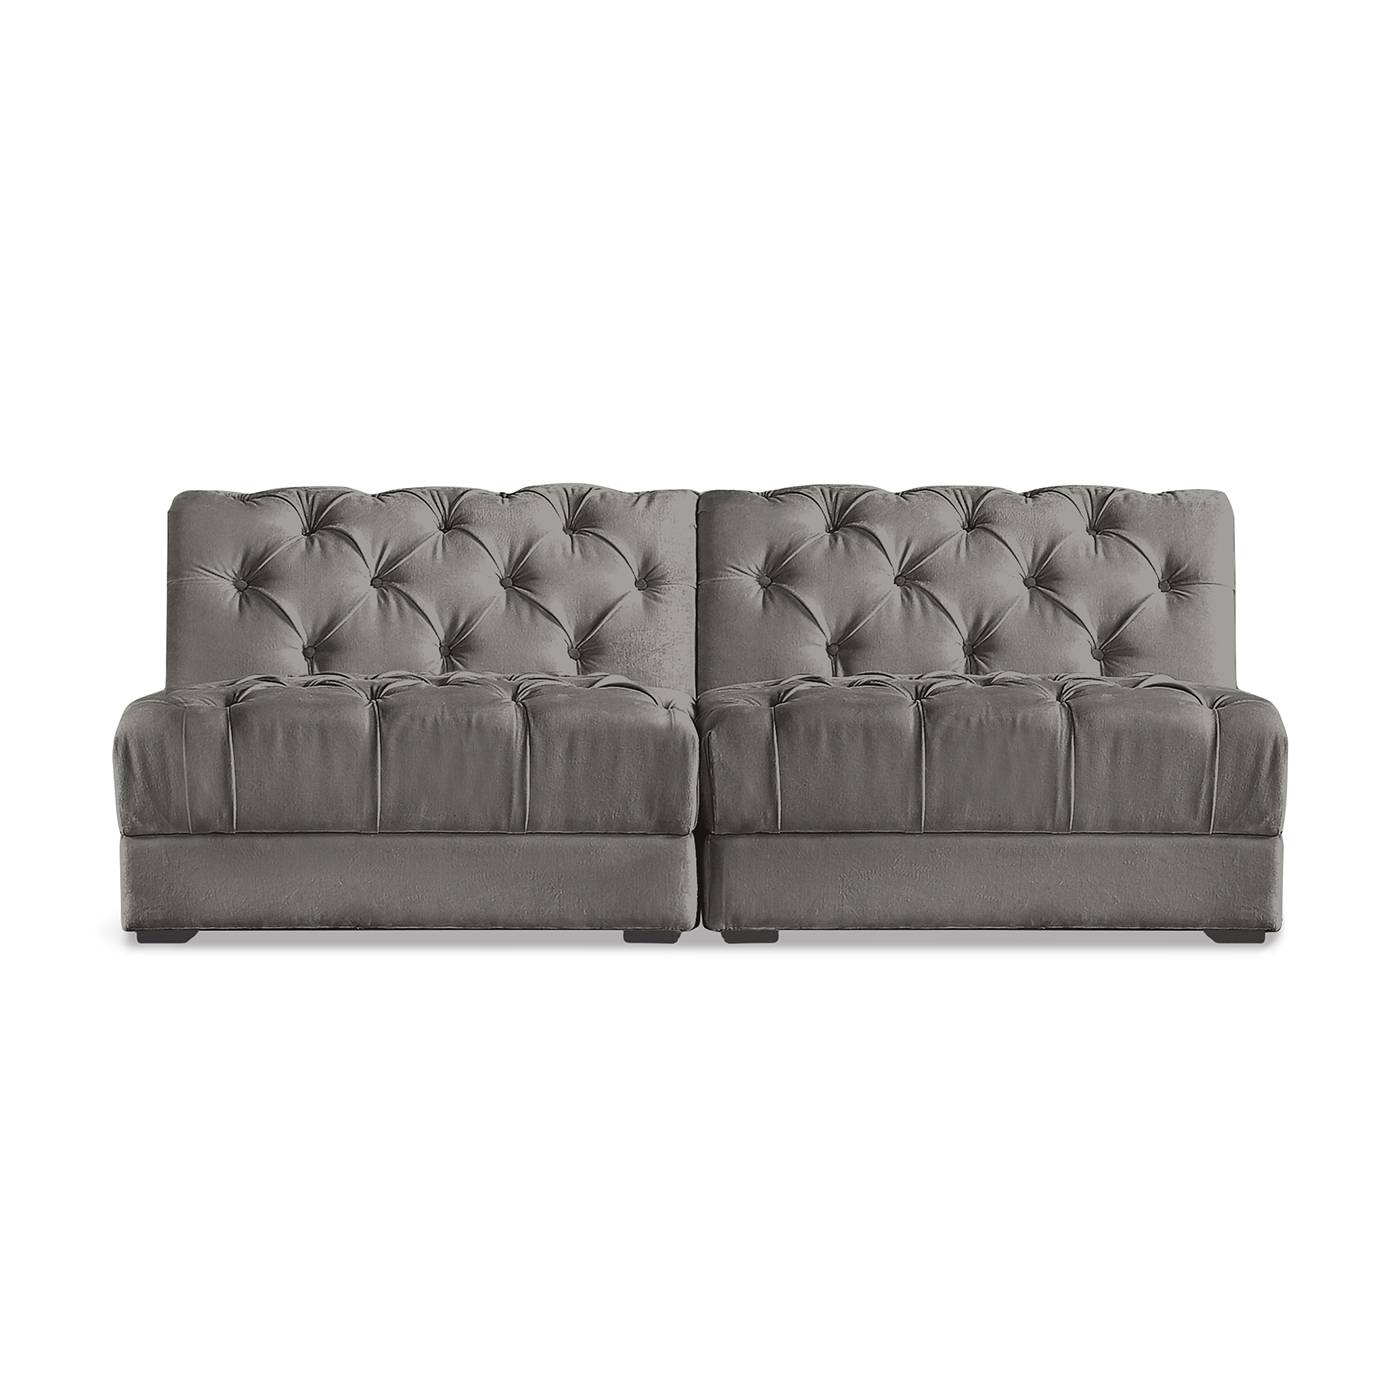 Ultra Sectional   Armless Piece | Modern Furniture | Jonathan Adler In Armless Sectional Sofas (Photo 30 of 30)